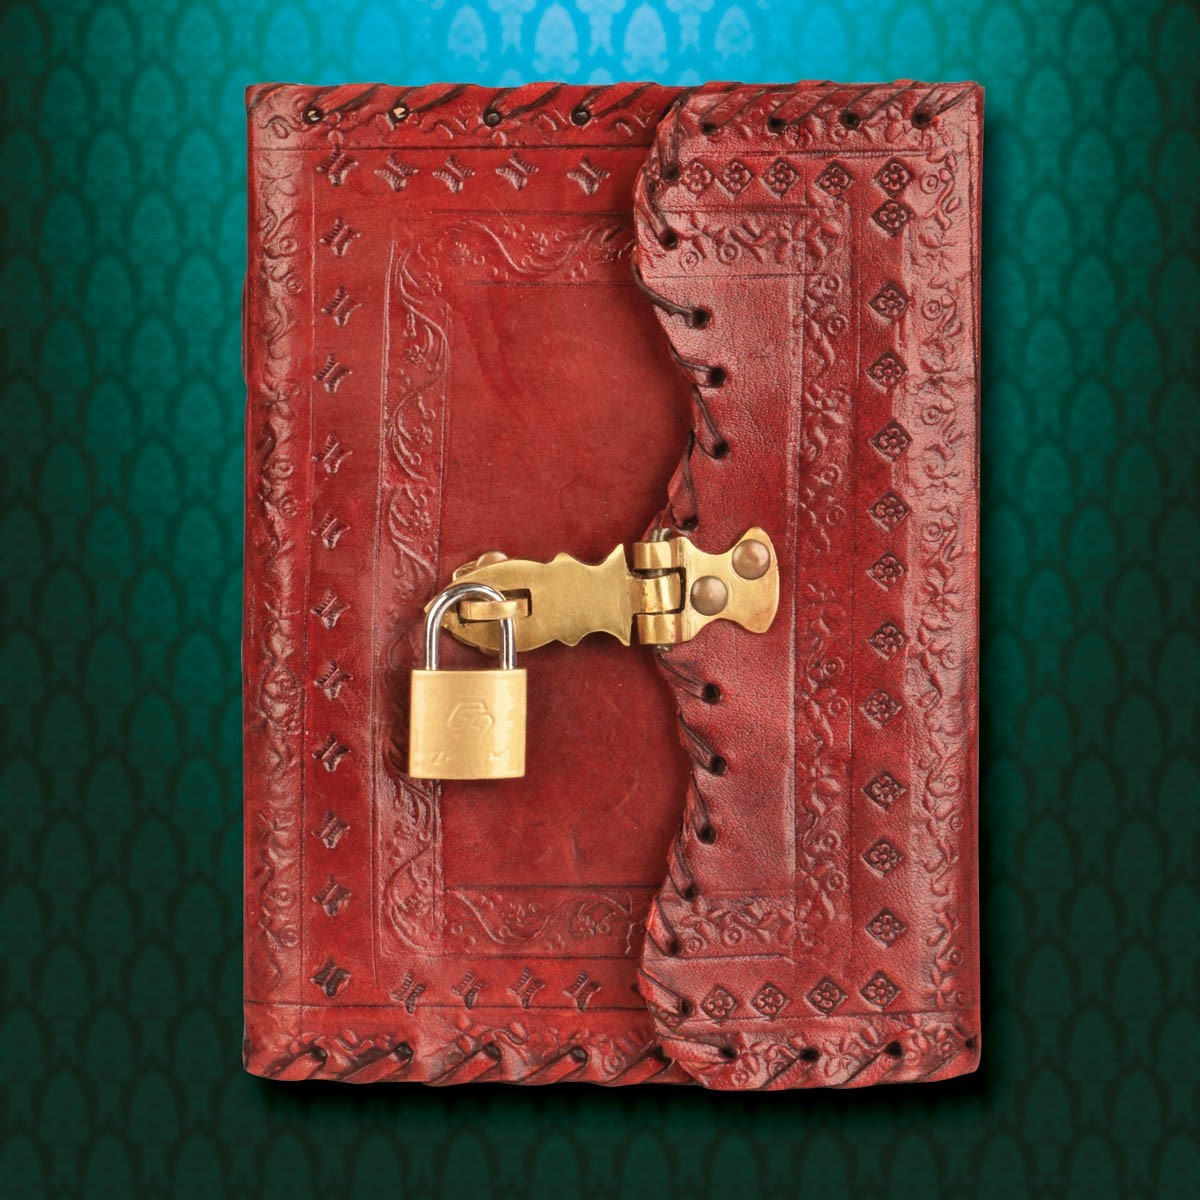 Locking Leather Journal with Key